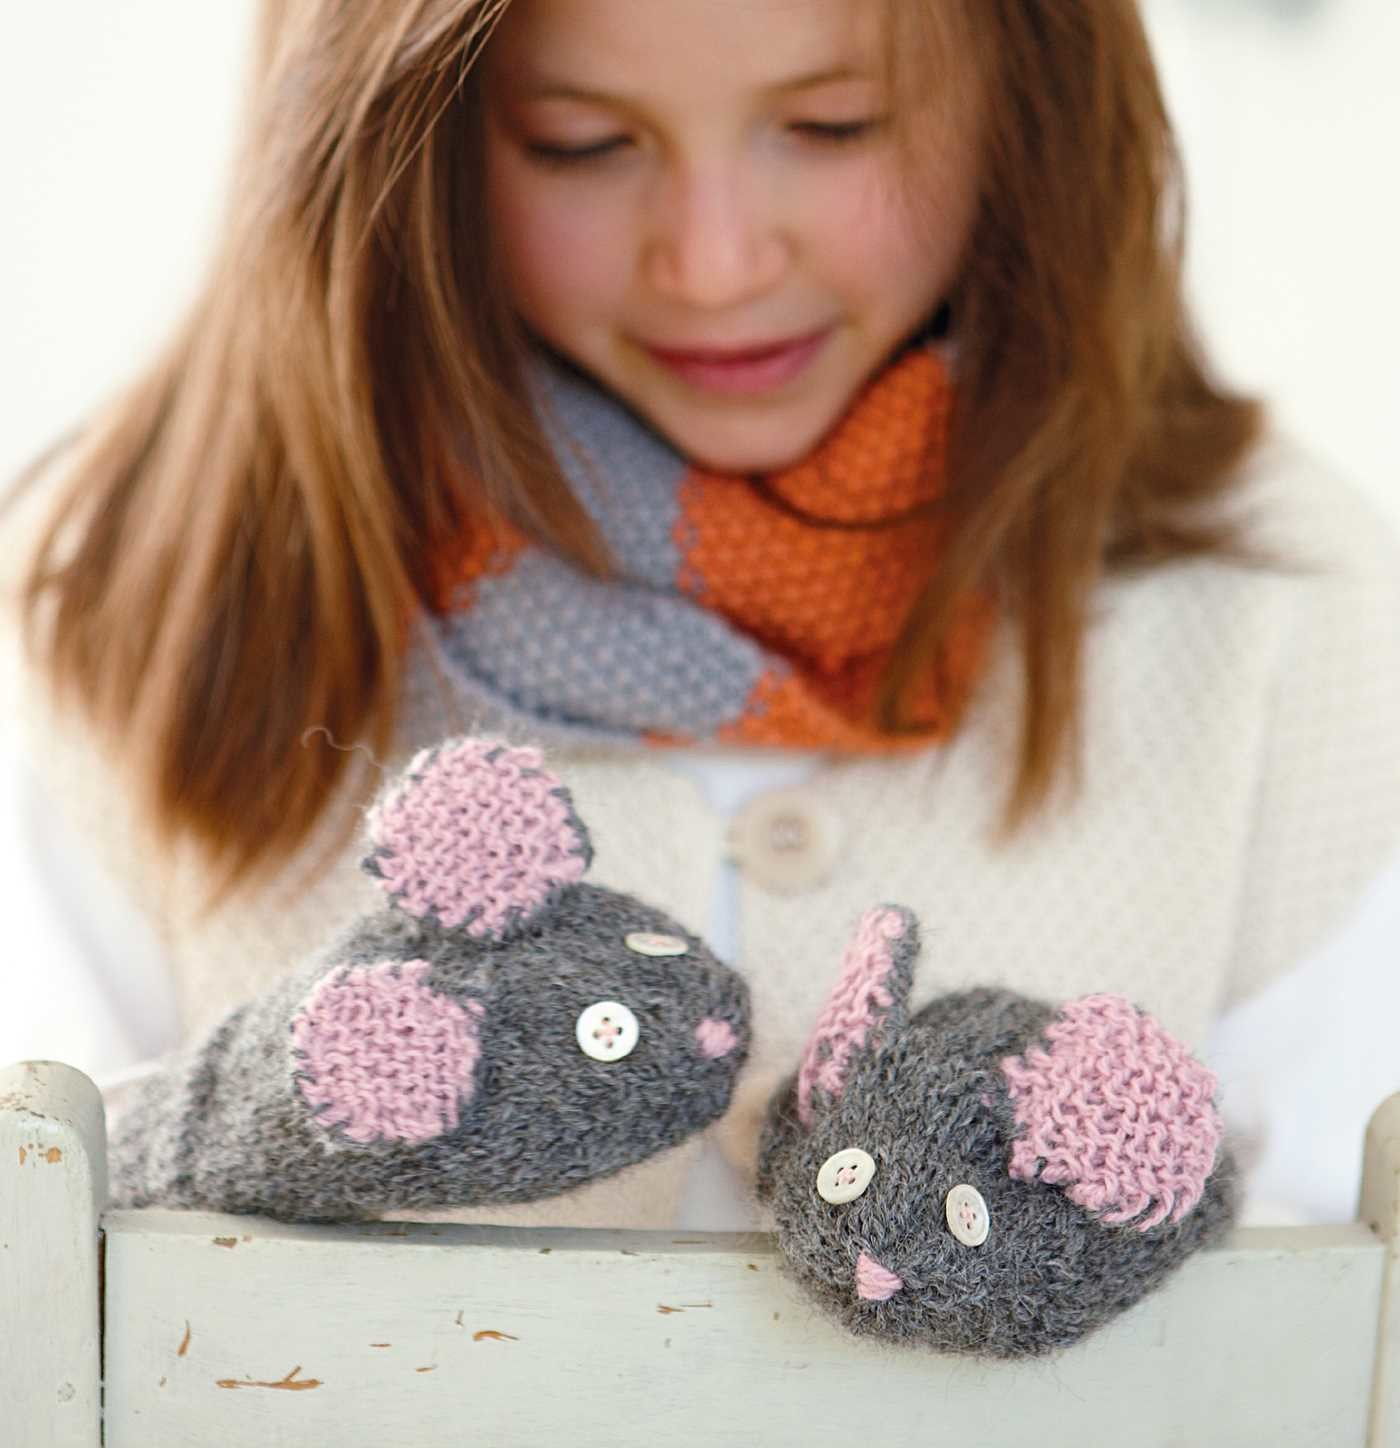 Knitting for children 9781782494614.in02